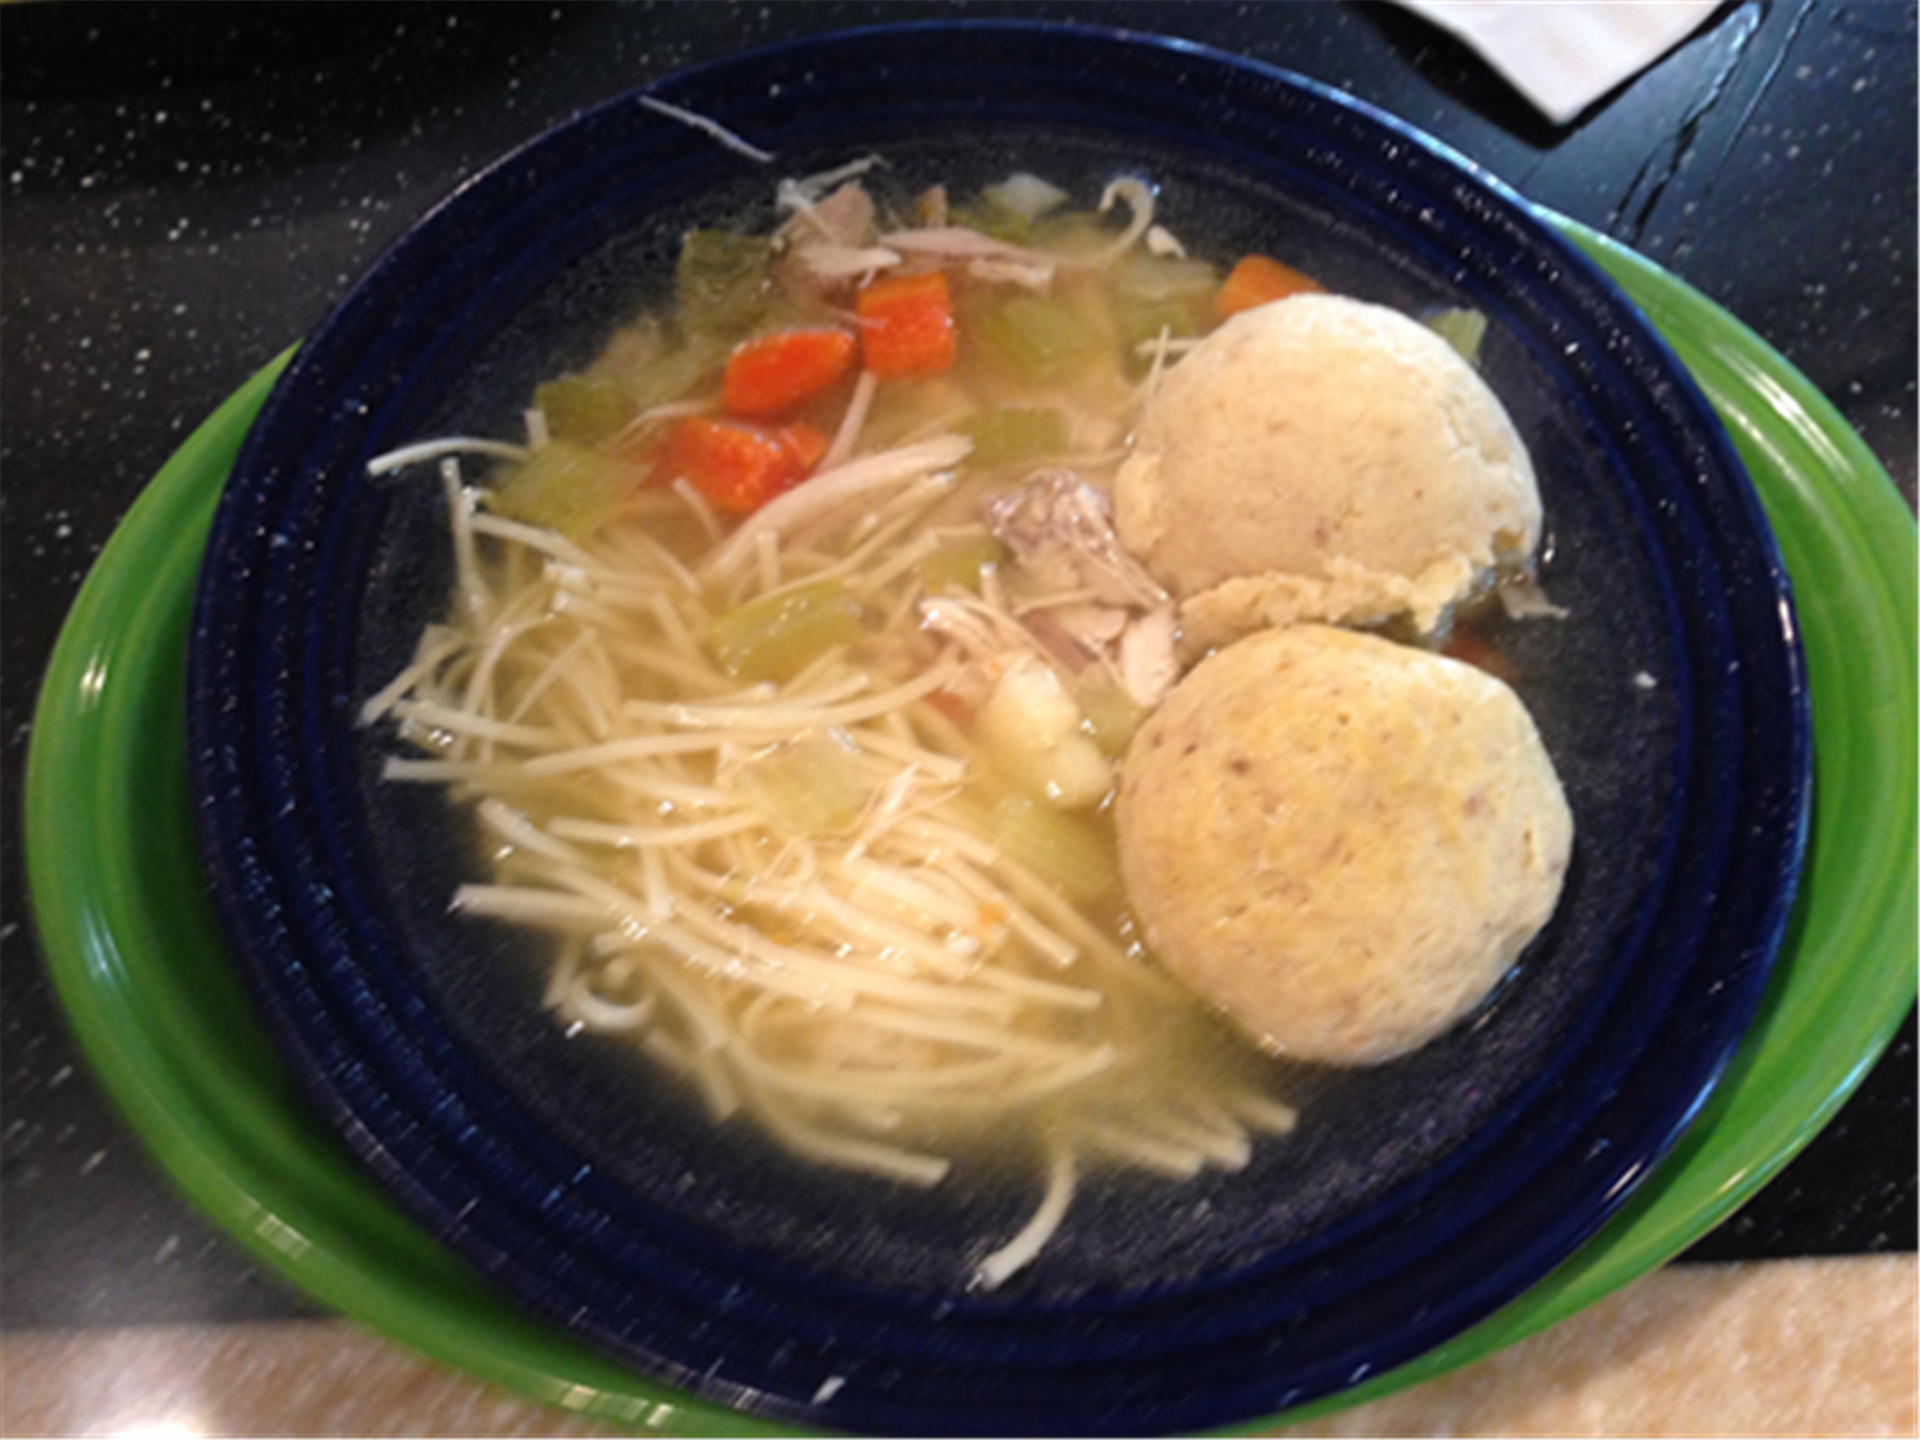 matzo ball soup with chicken, carrots, and celery